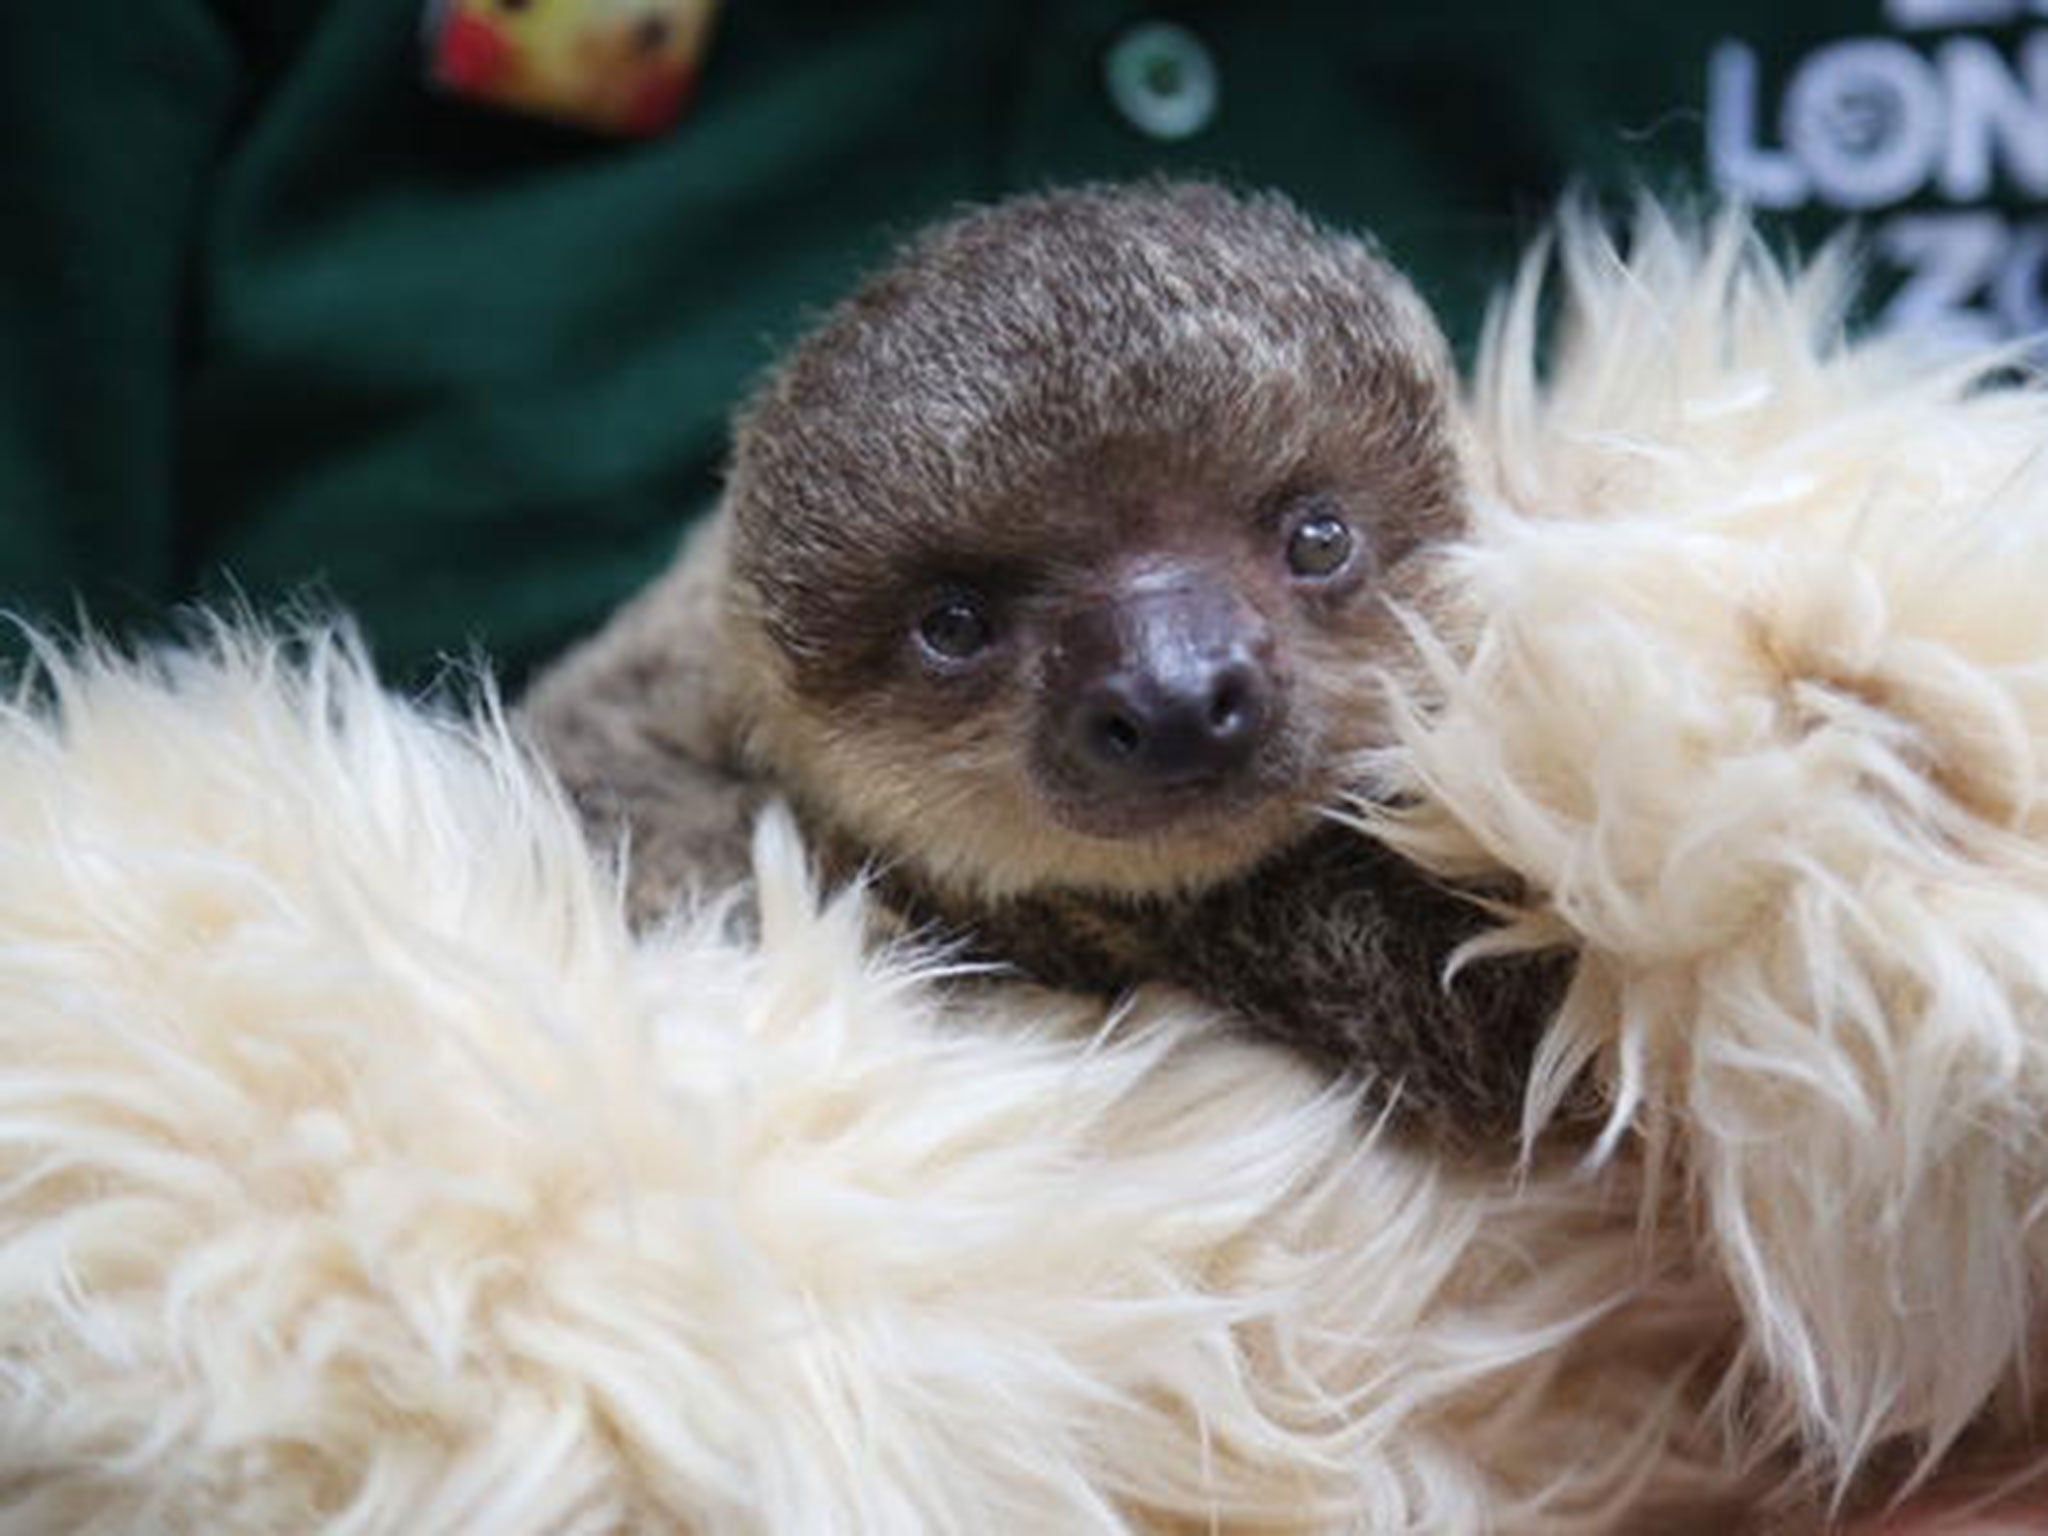 London Zoo is raising a sloth with a teddy bear as a surrogate mother